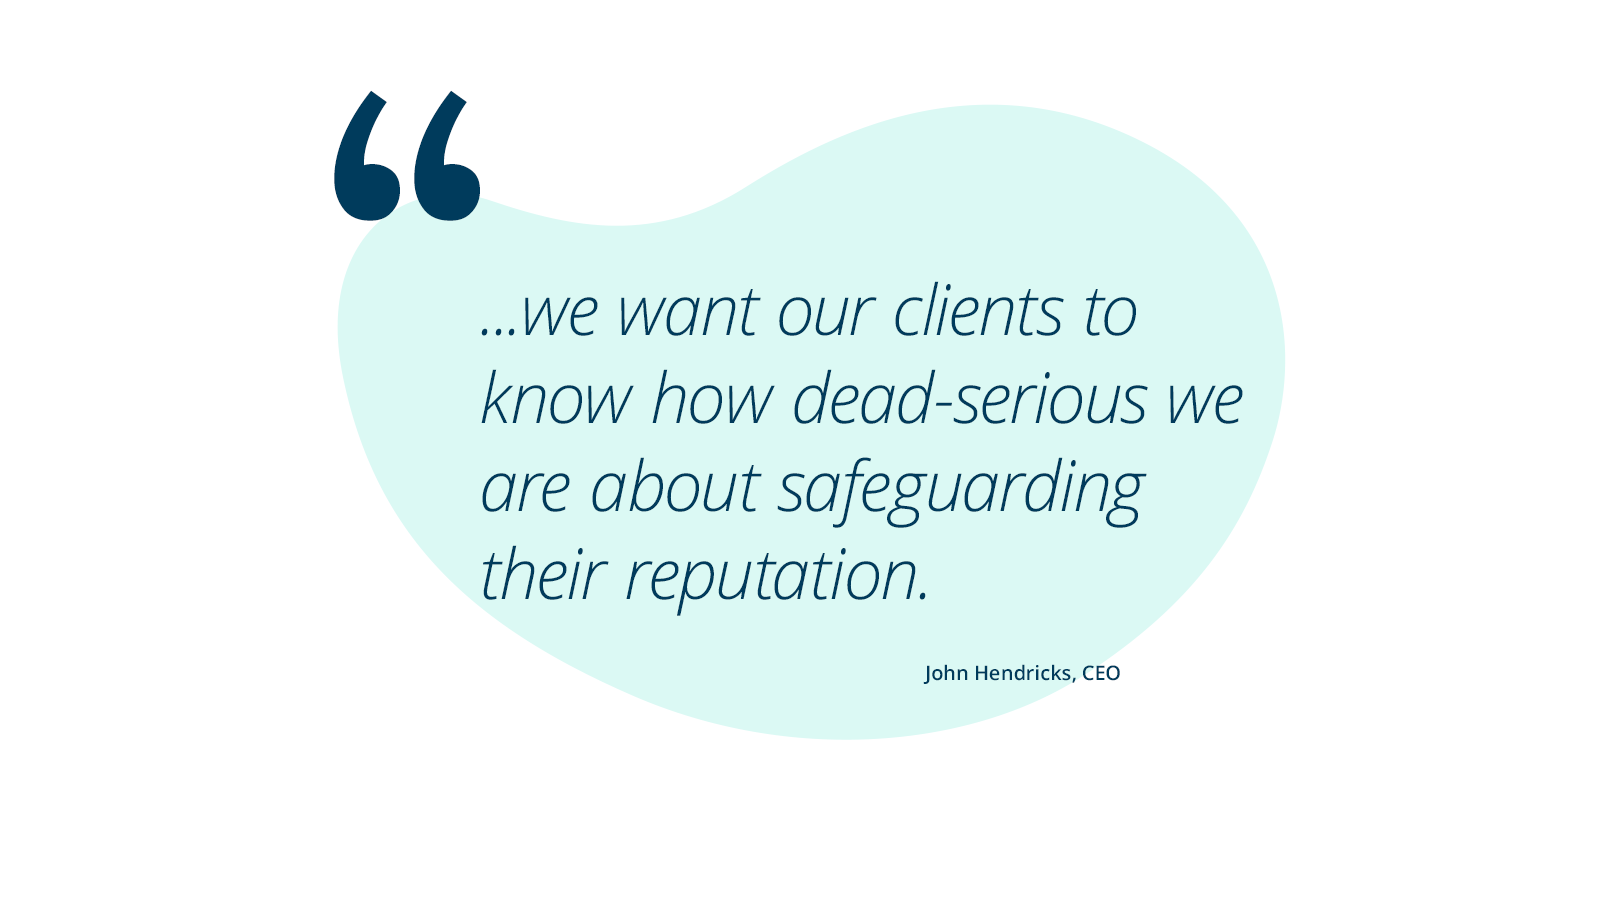 we           want our clients to know how dead-serious we are about safeguarding           their reputation